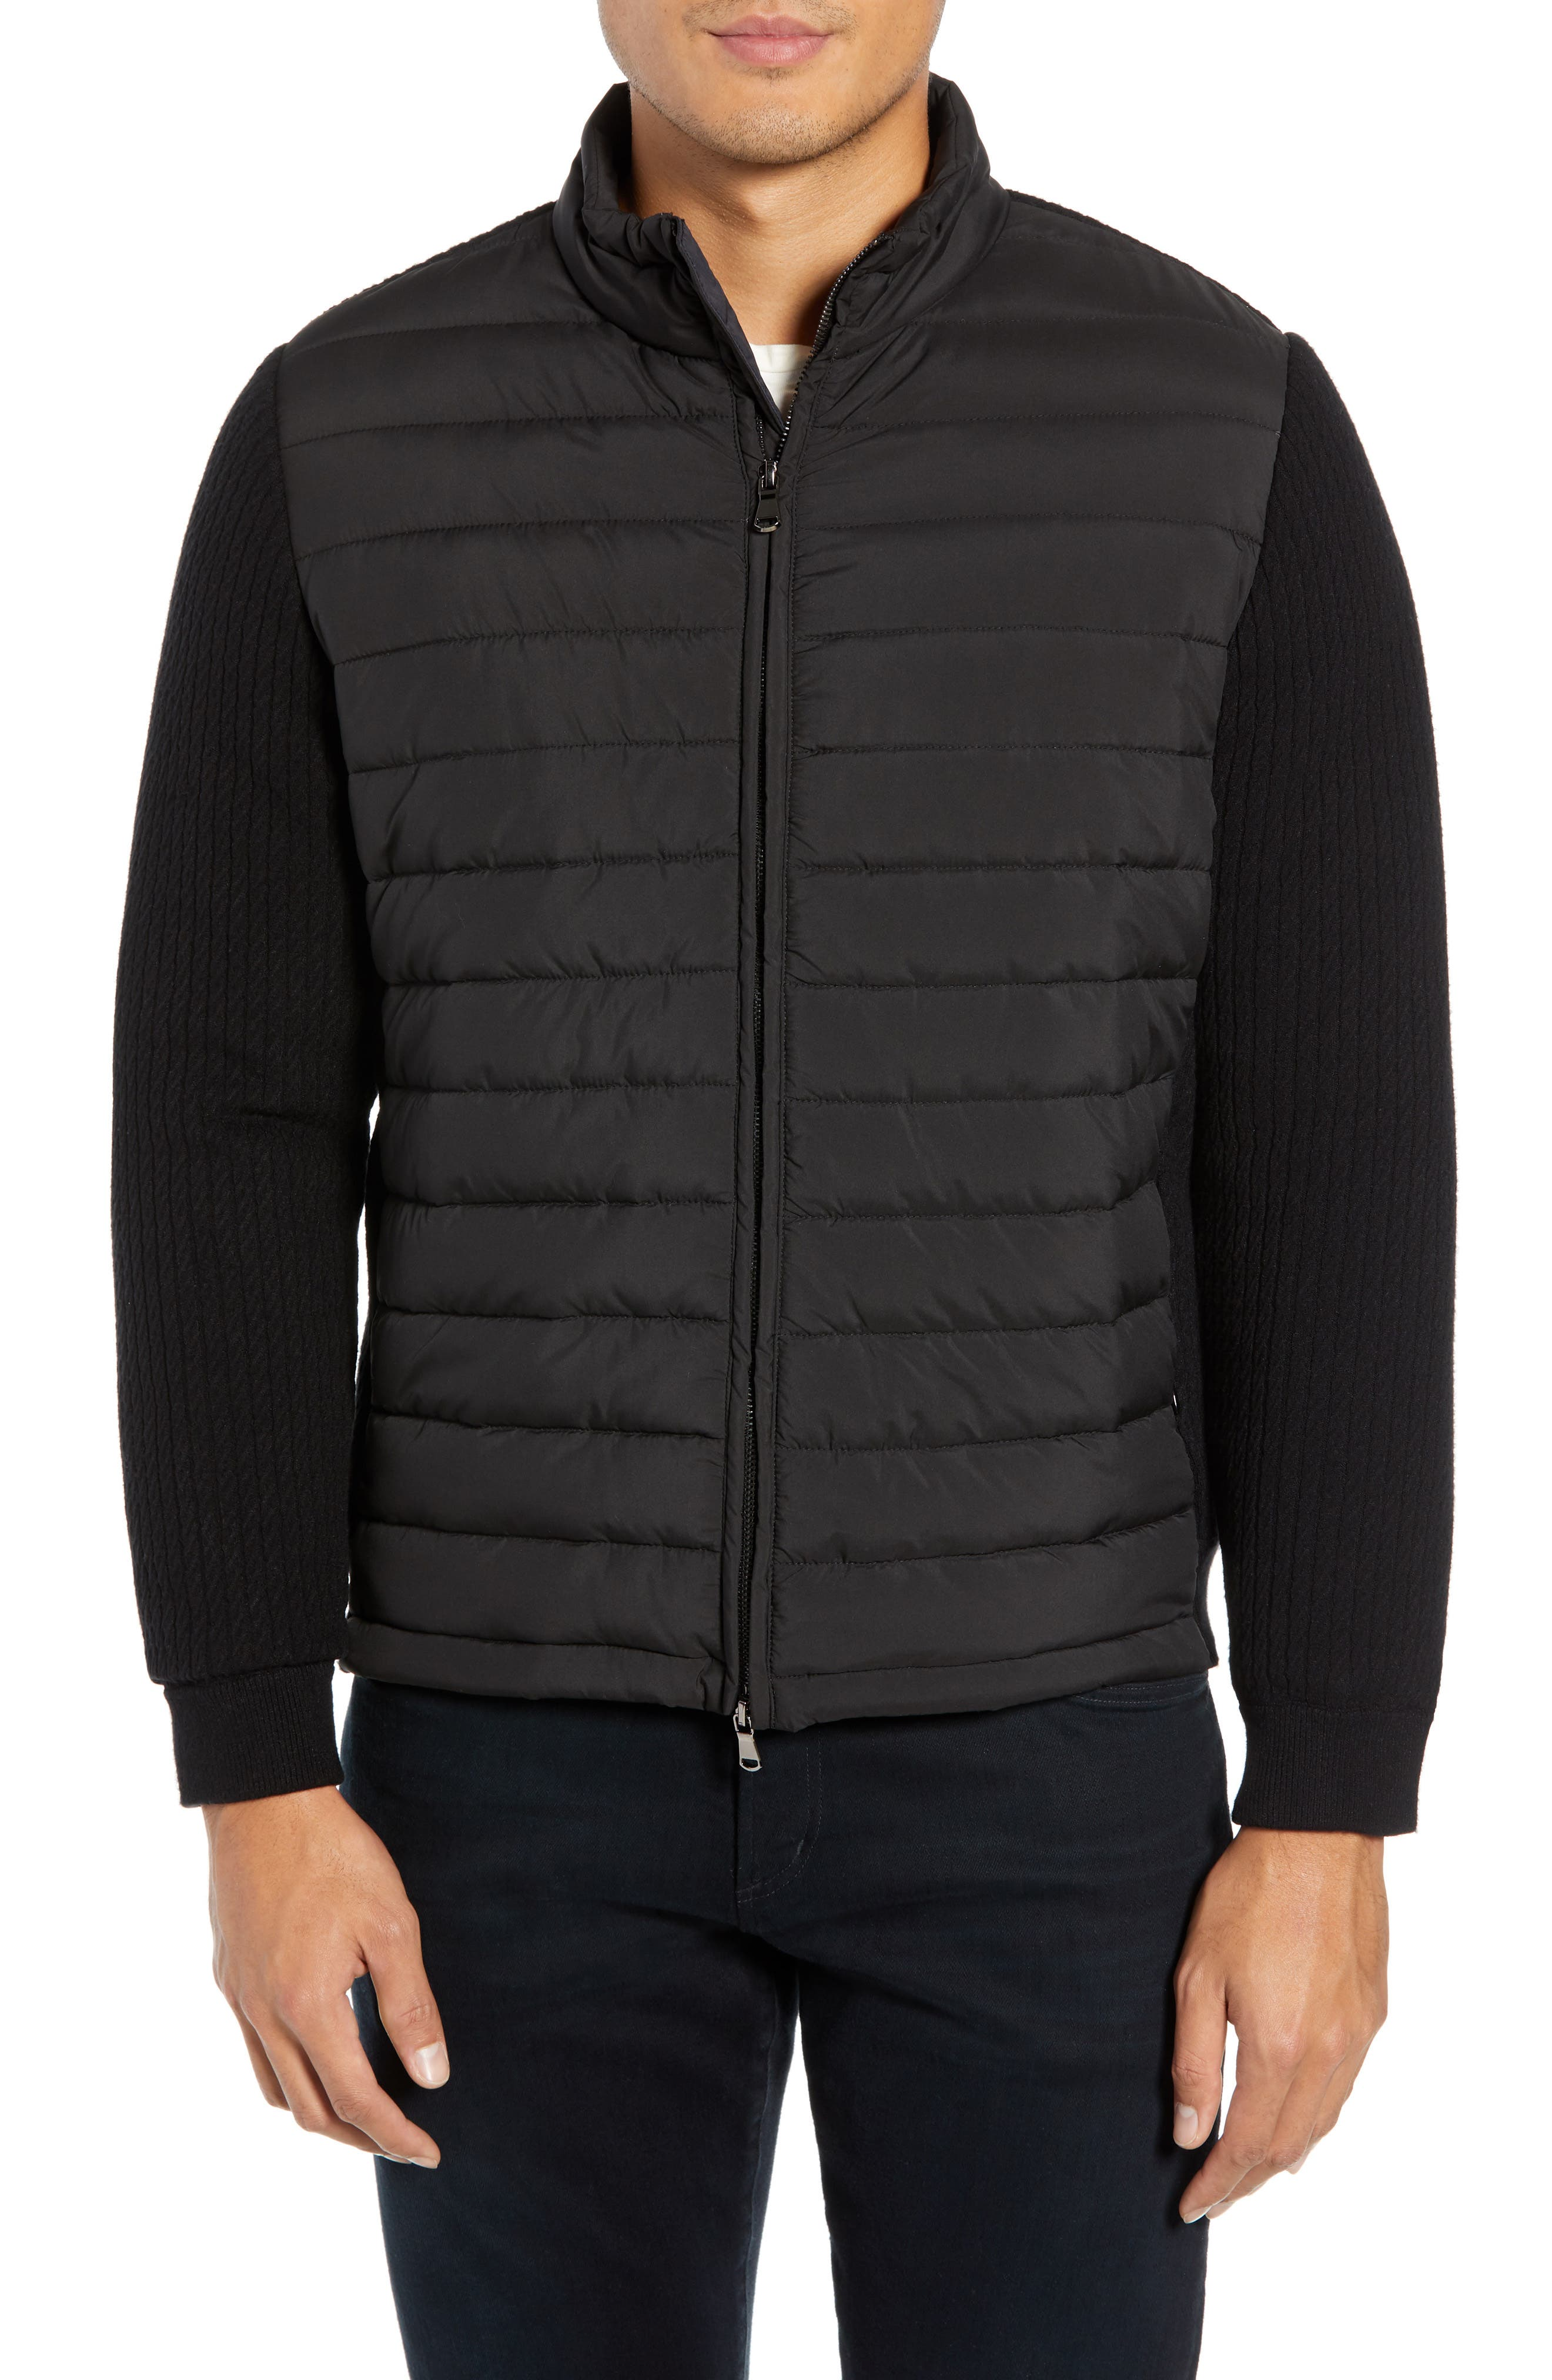 ZACHARY PRELL Federal Jacket, Main, color, BLACK